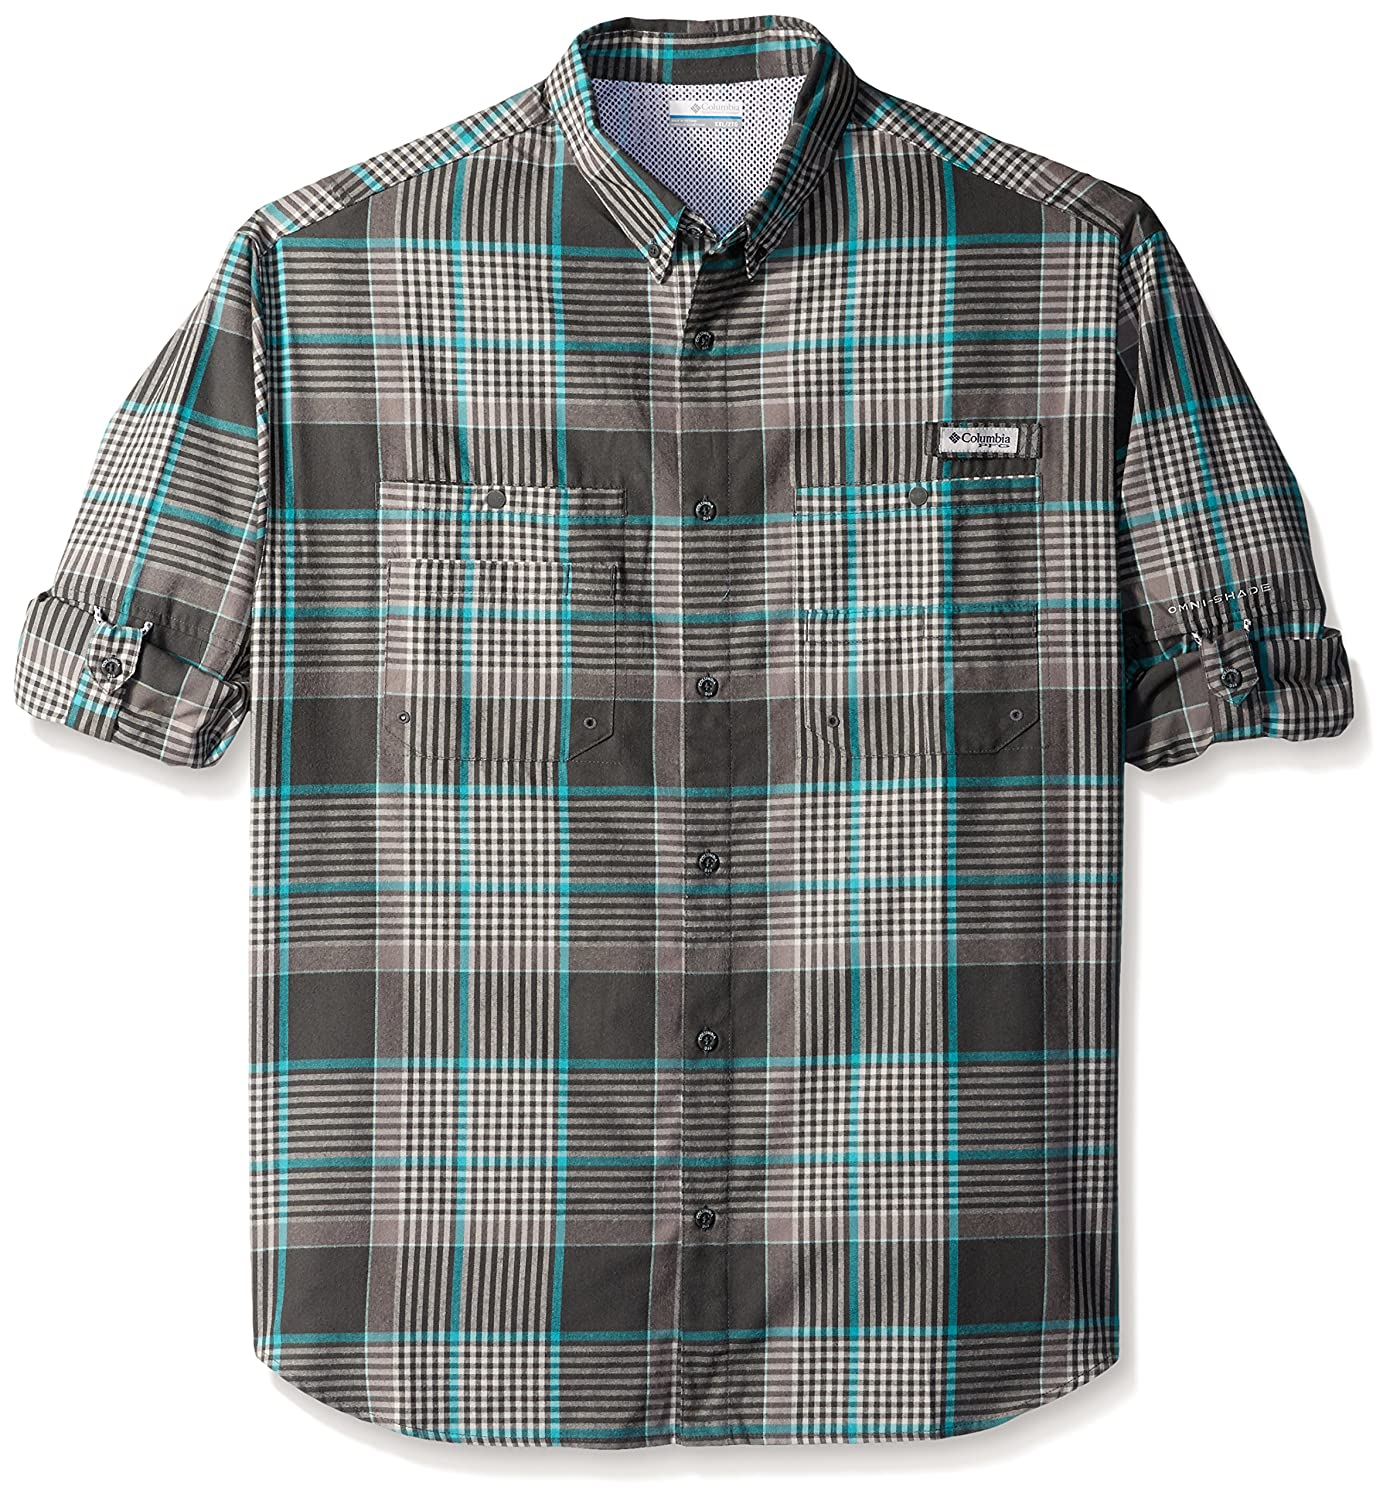 Columbia Men's Tamiami Flannel Long Sleeve Shirt, Grill Plaid, Medium